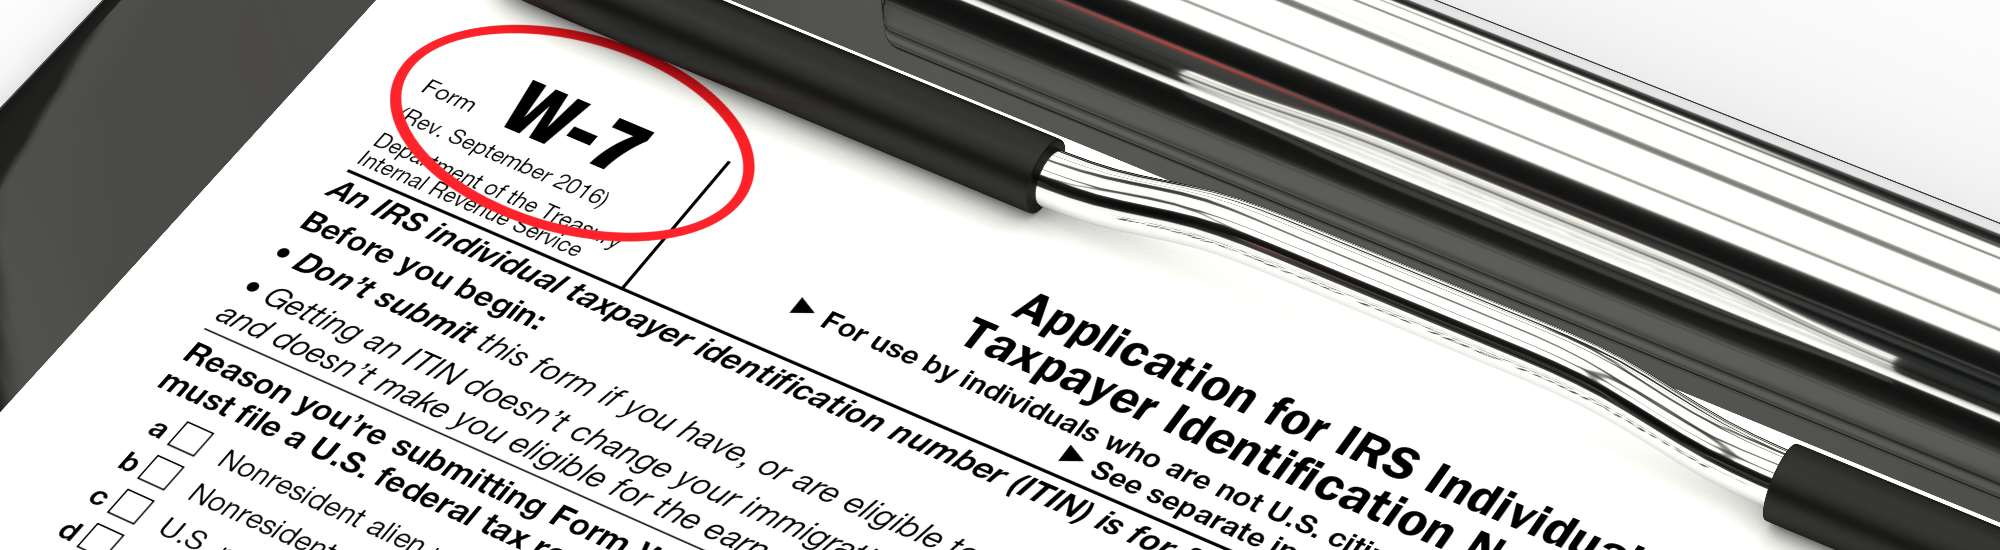 US Tax IQ | IIndividual Taxpayer Identification Number Application